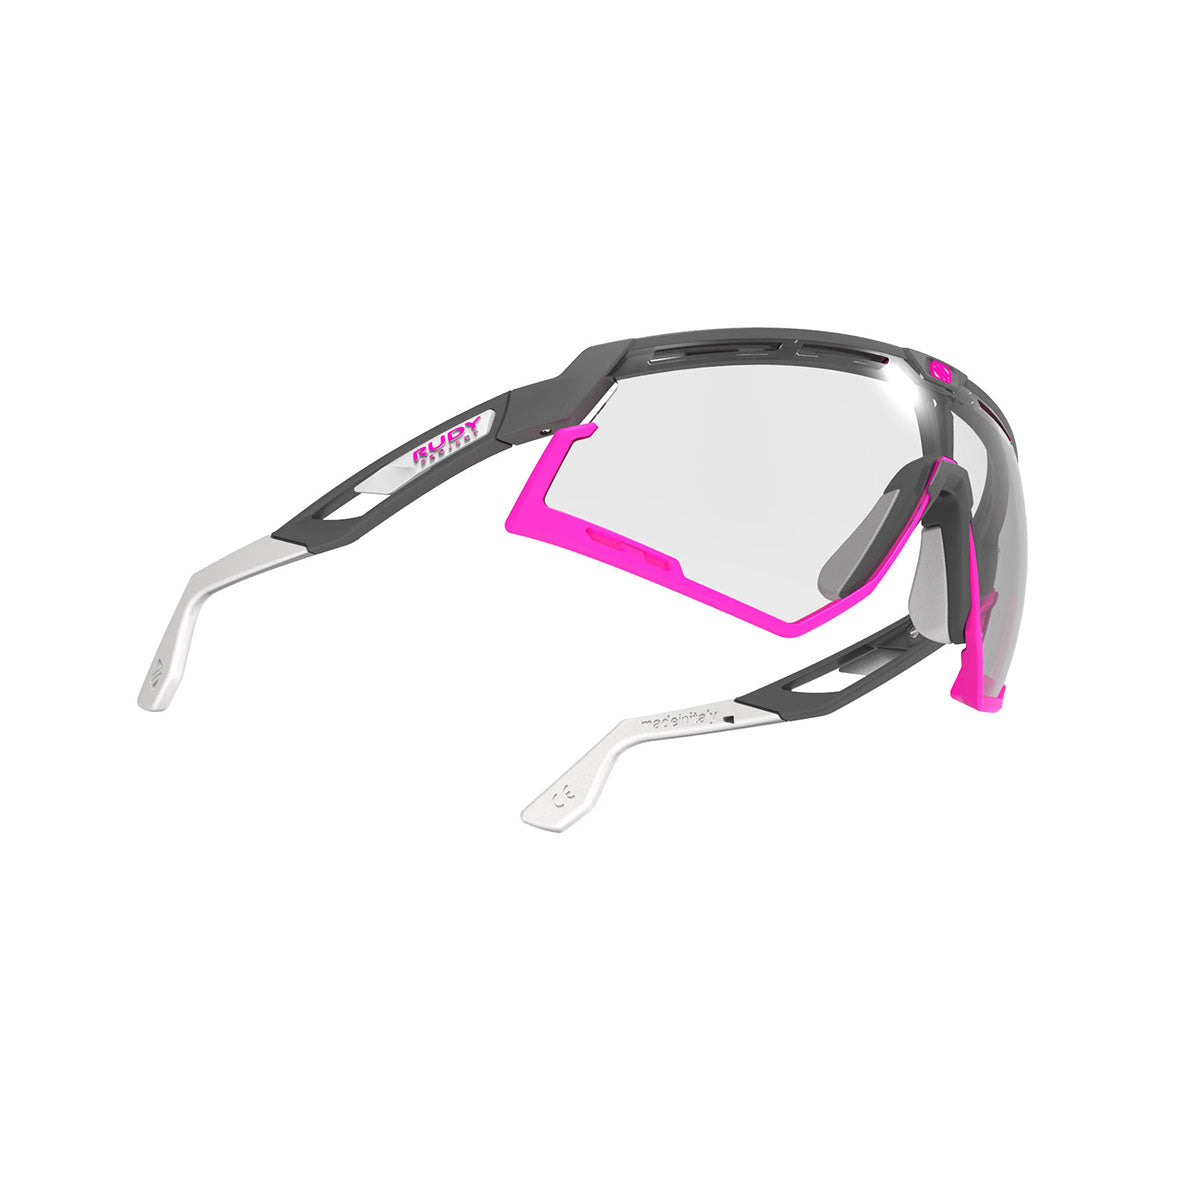 Rudy Project - Defender - frame color: Pyombo Matte - lens color: ImpactX-2 Photochromic Clear to Black - Bumper Color: Fuxia - photo angle: Bottom Front Angle Variant Hover Image